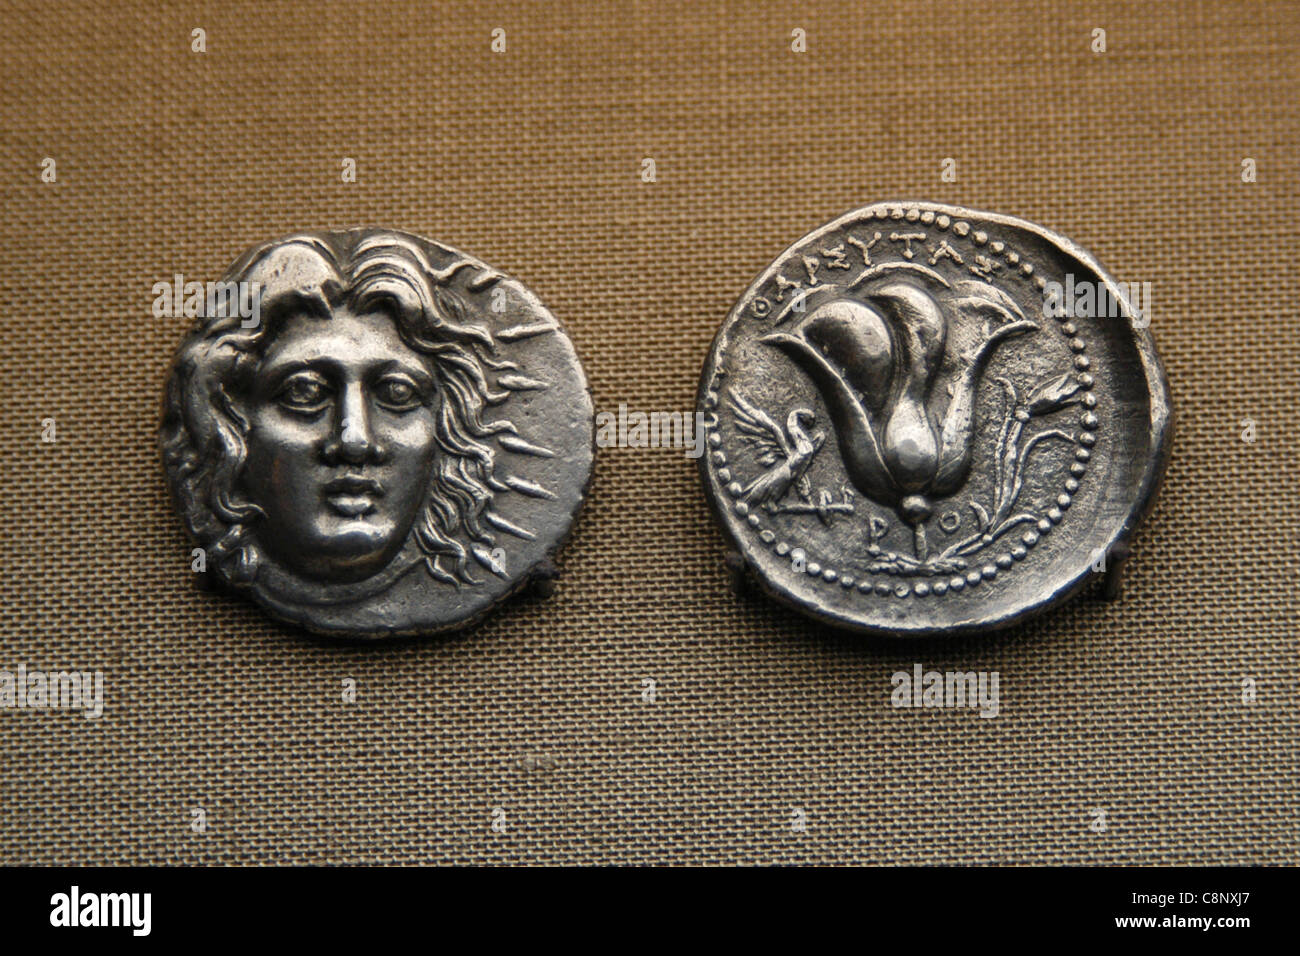 Ancient Greek coins from the numismatic collection of the